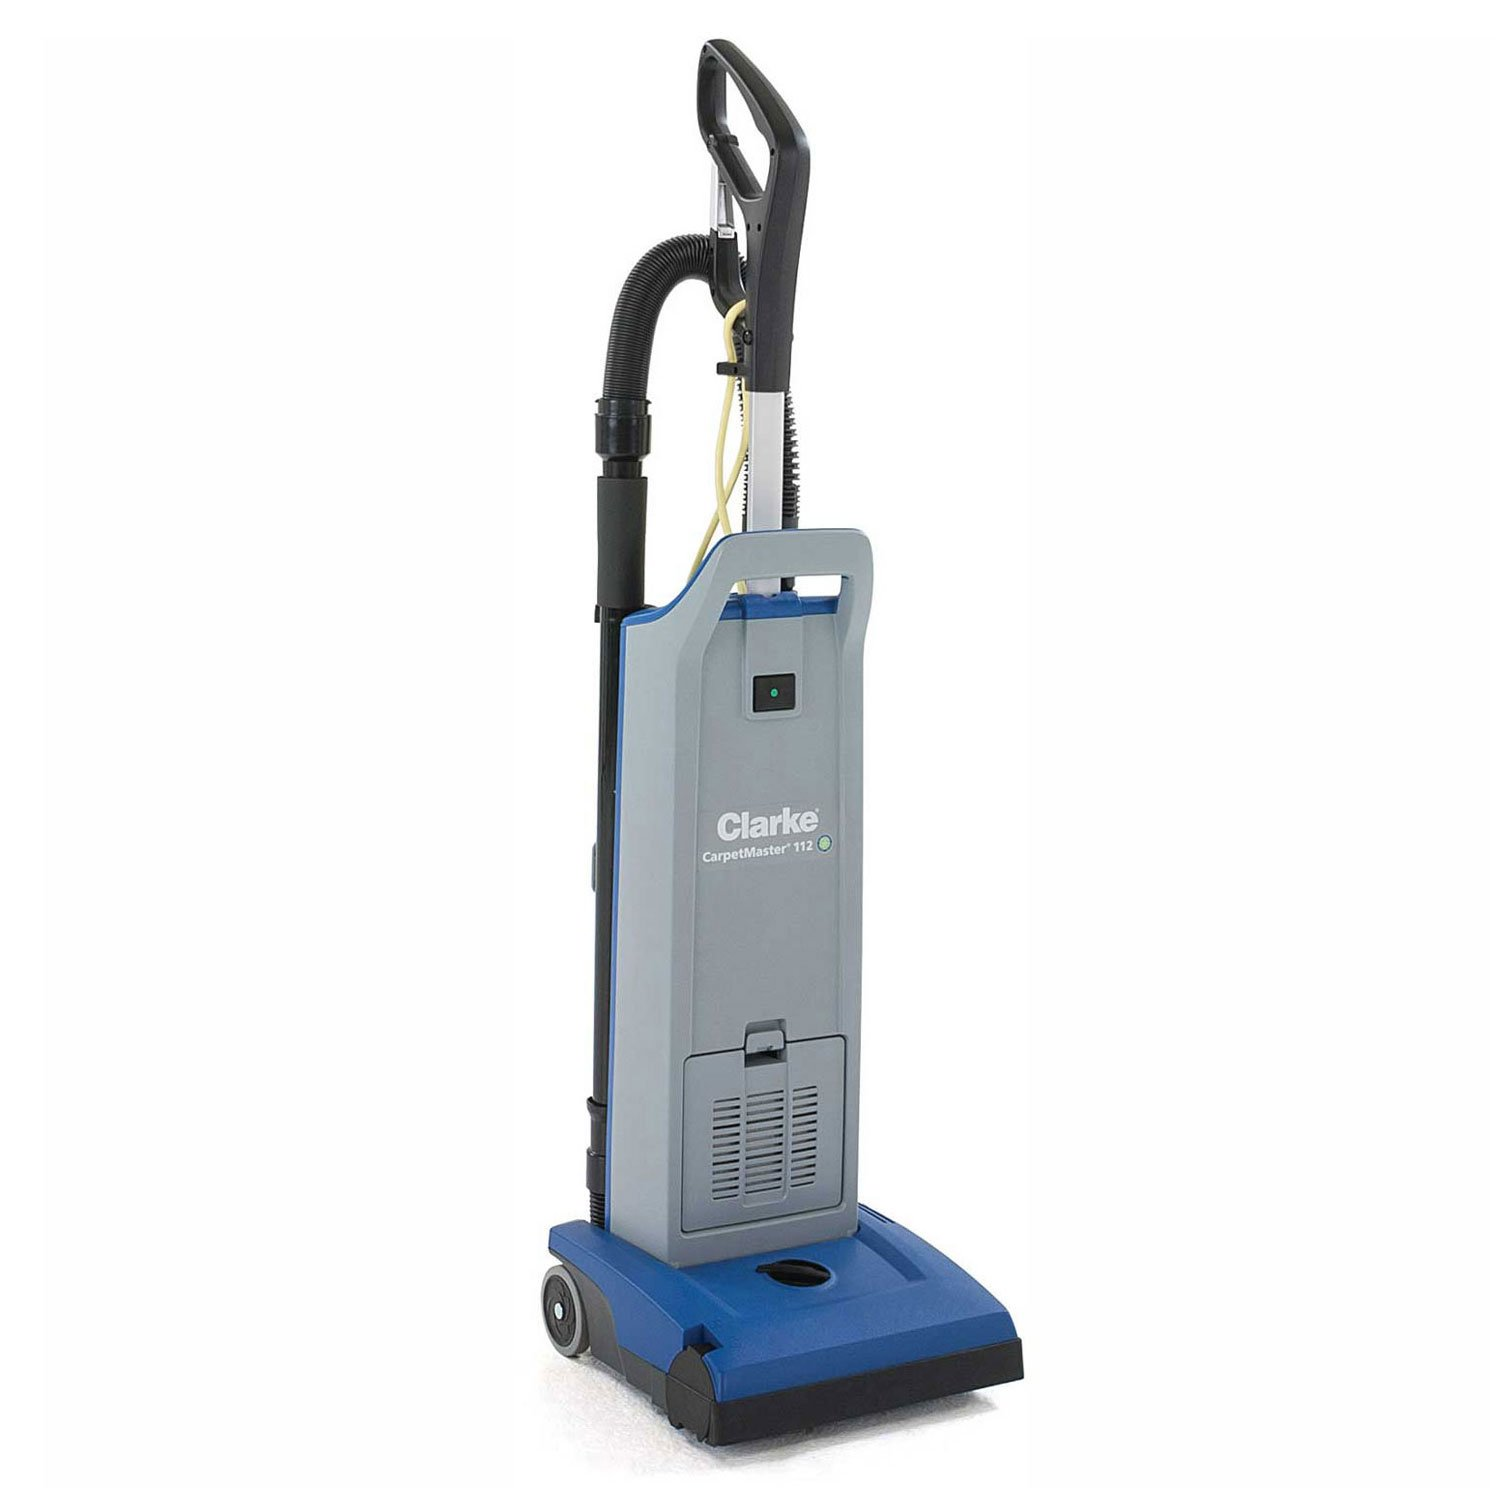 Clarke CarpetMaster 112 Upright 107407690 Vacuums Blue Spasm price Dealing full price reduction